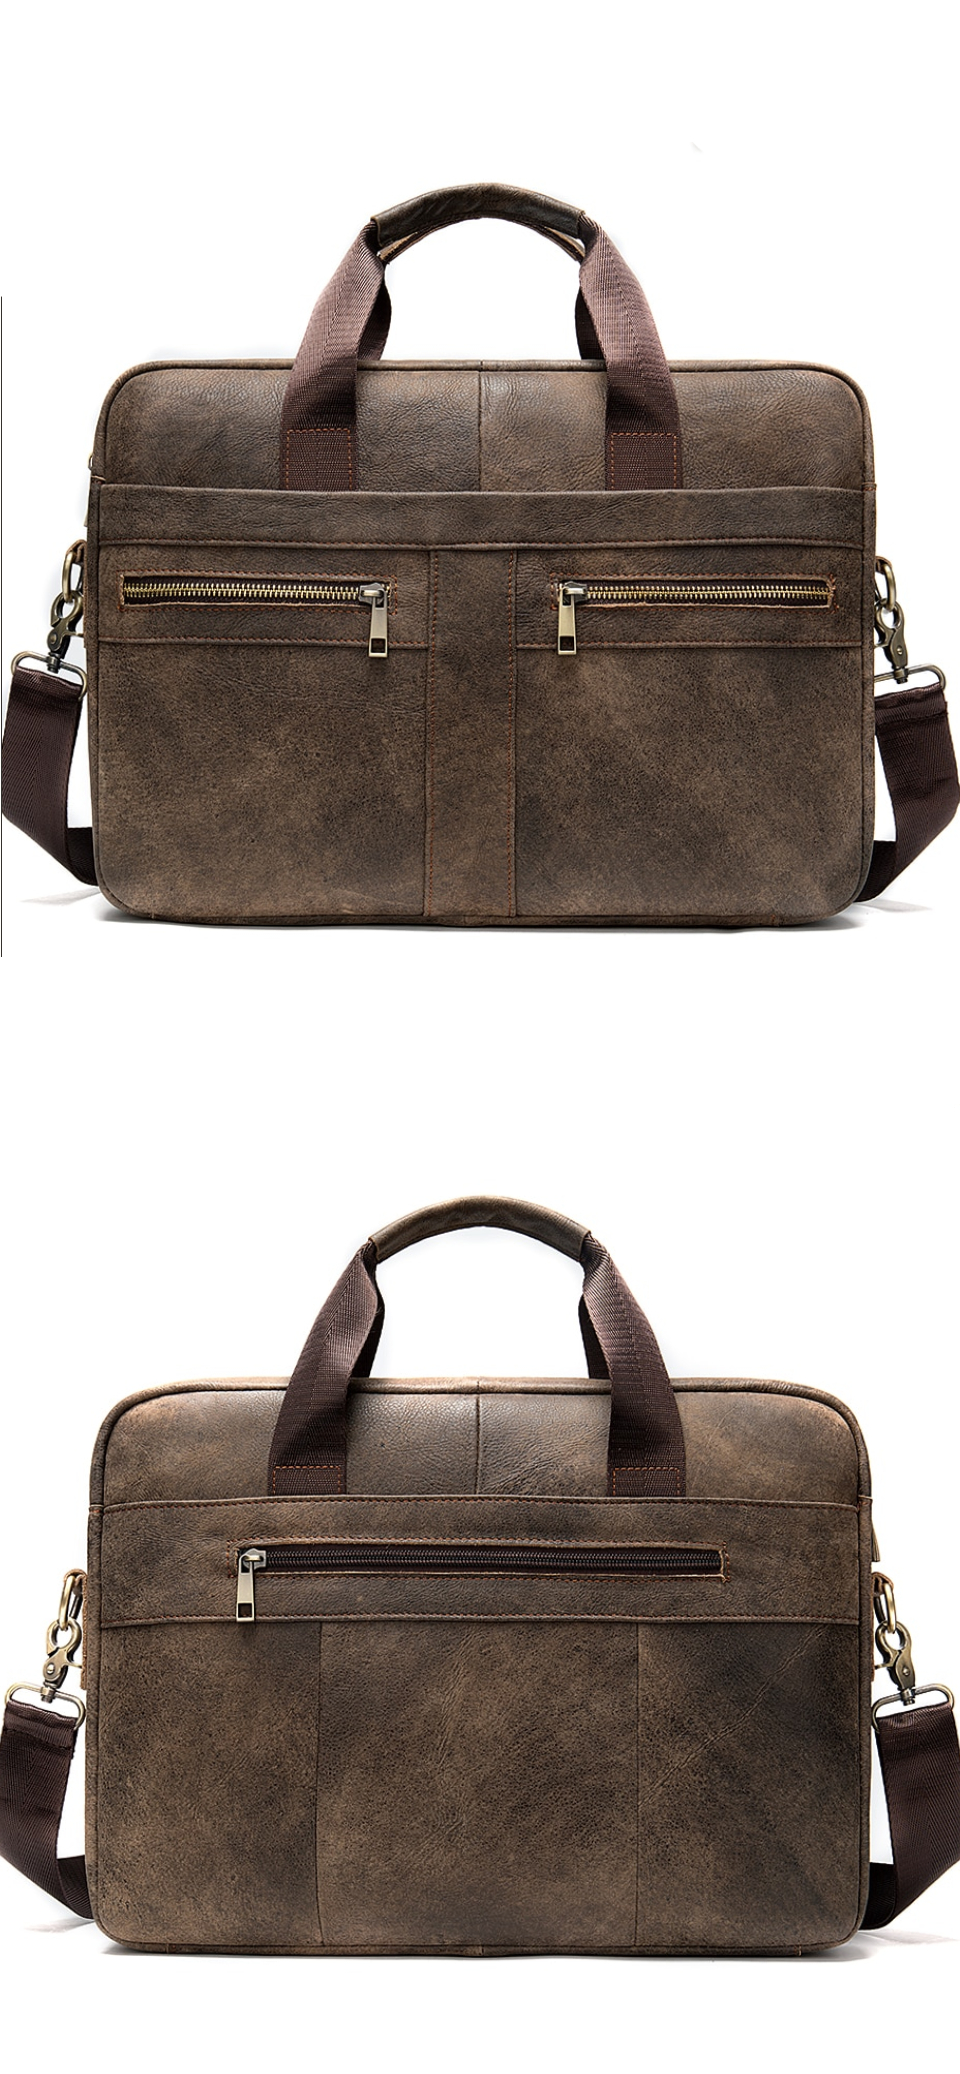 High-quality leather briefcase for business men.